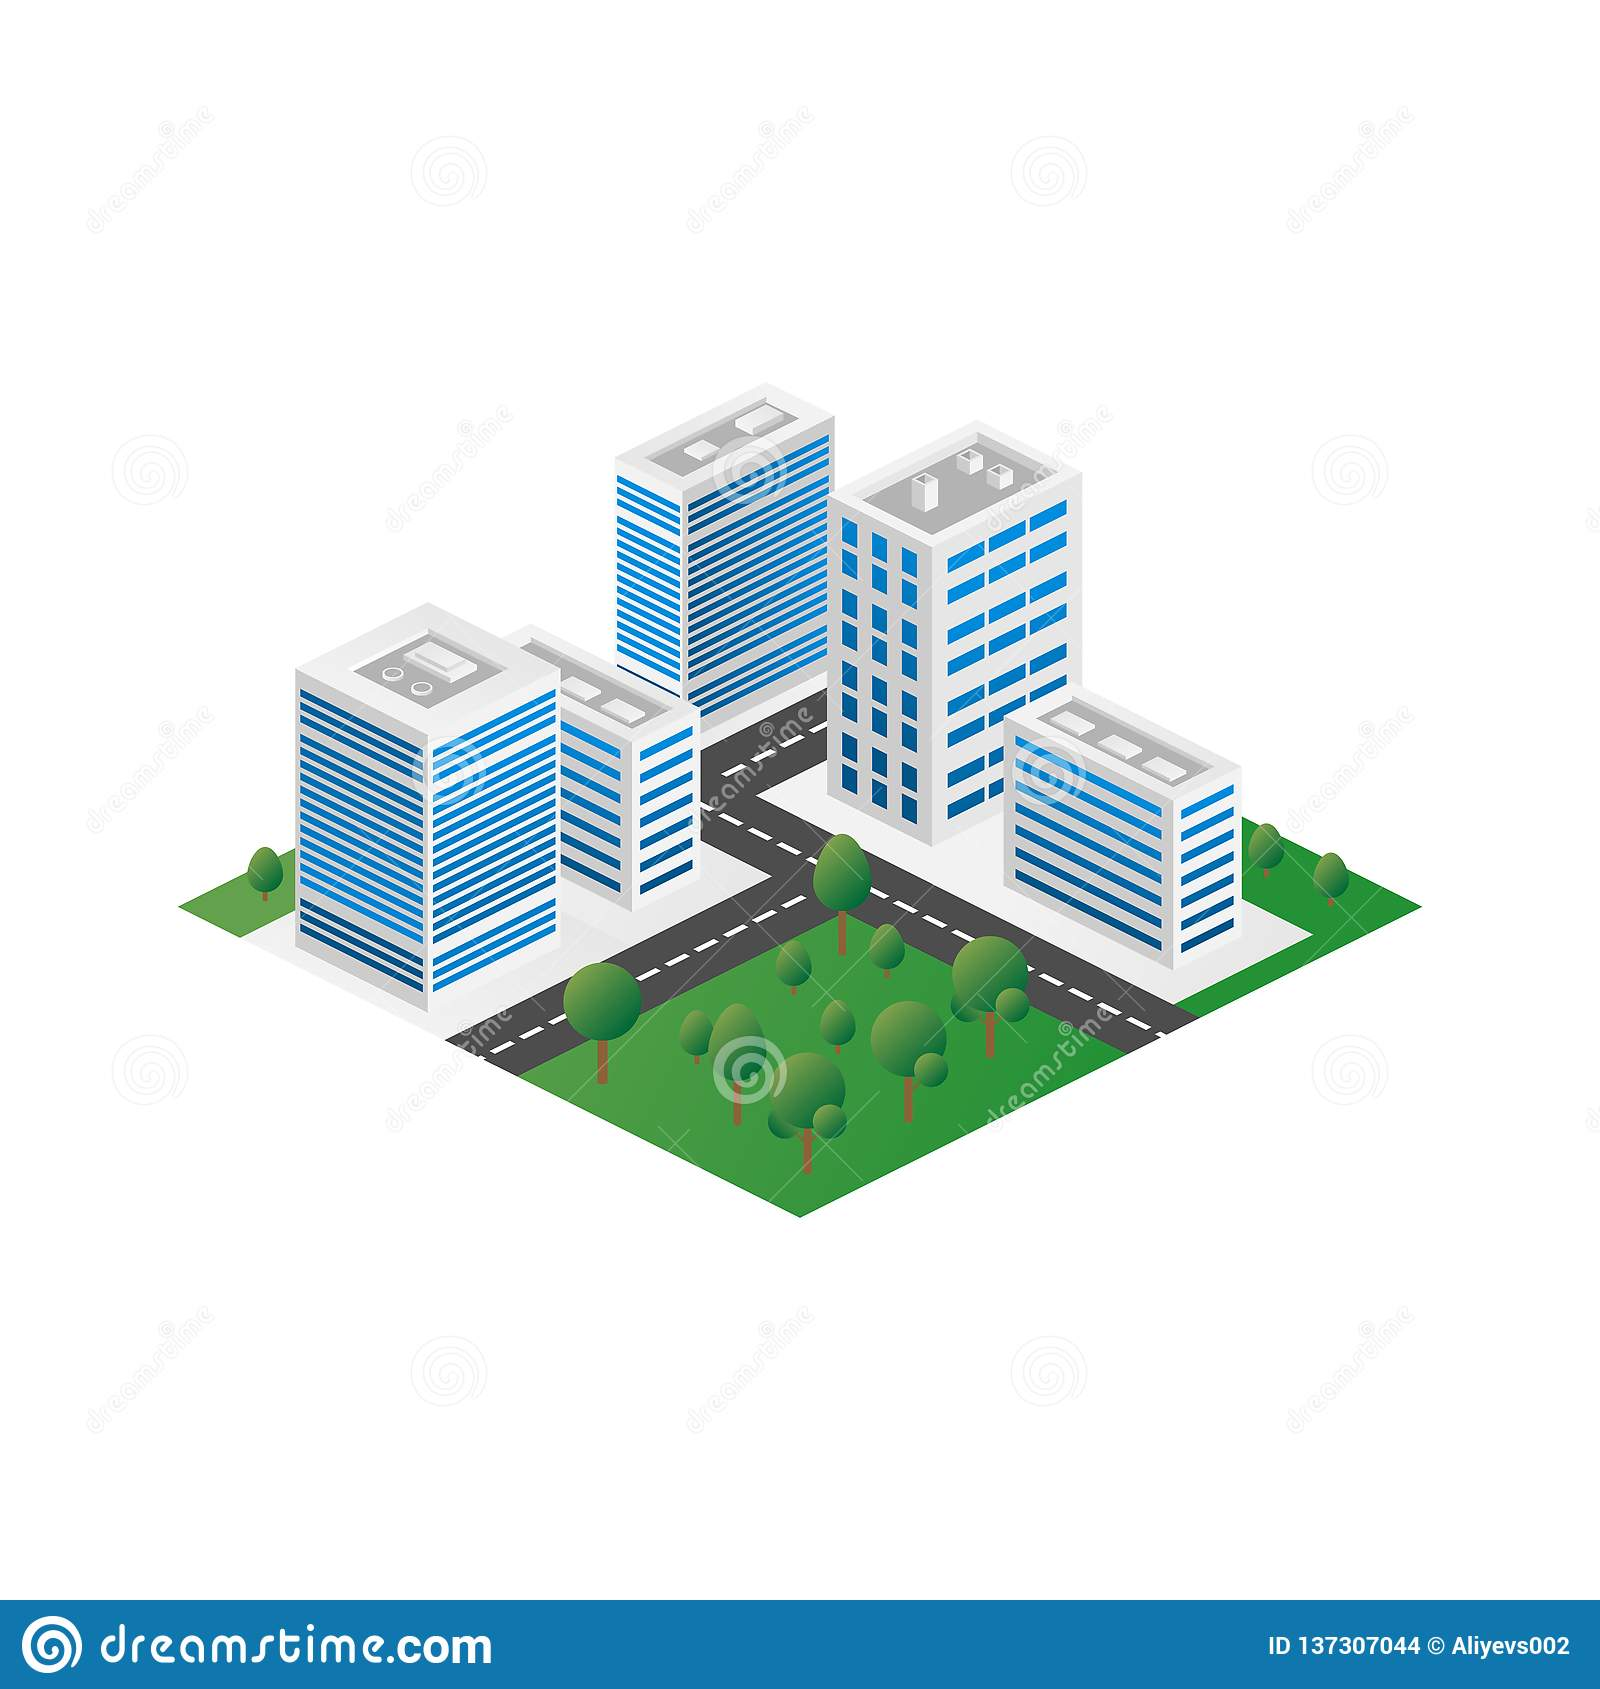 Megapolis 3d isometric three-dimensional view of the city. Collection of houses, skyscrapers, buildings, built and supermarkets